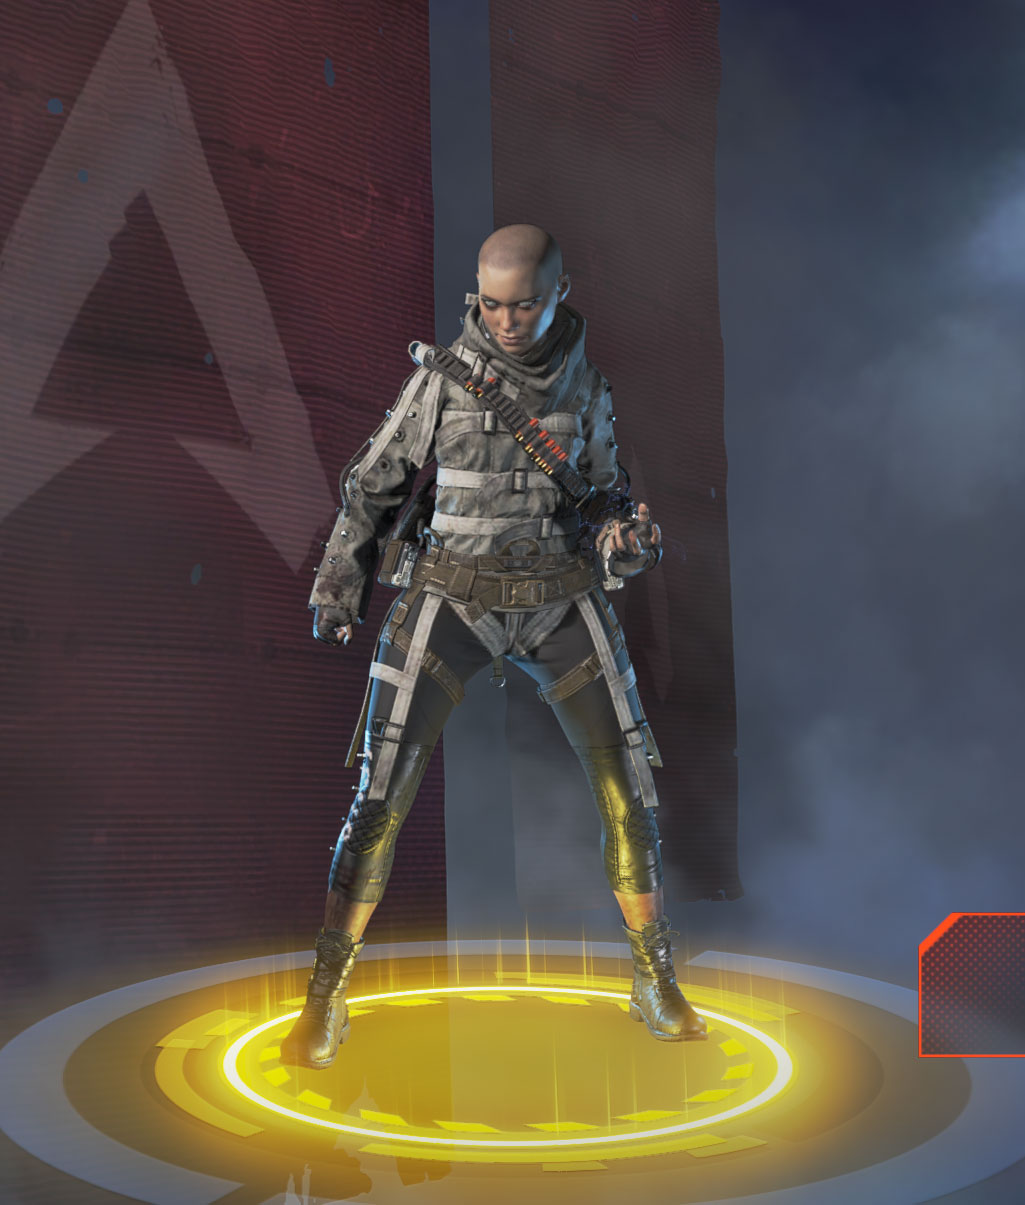 Apex Legends Wraith Guide – Tips, Abilities, Skins, & How-to Get the